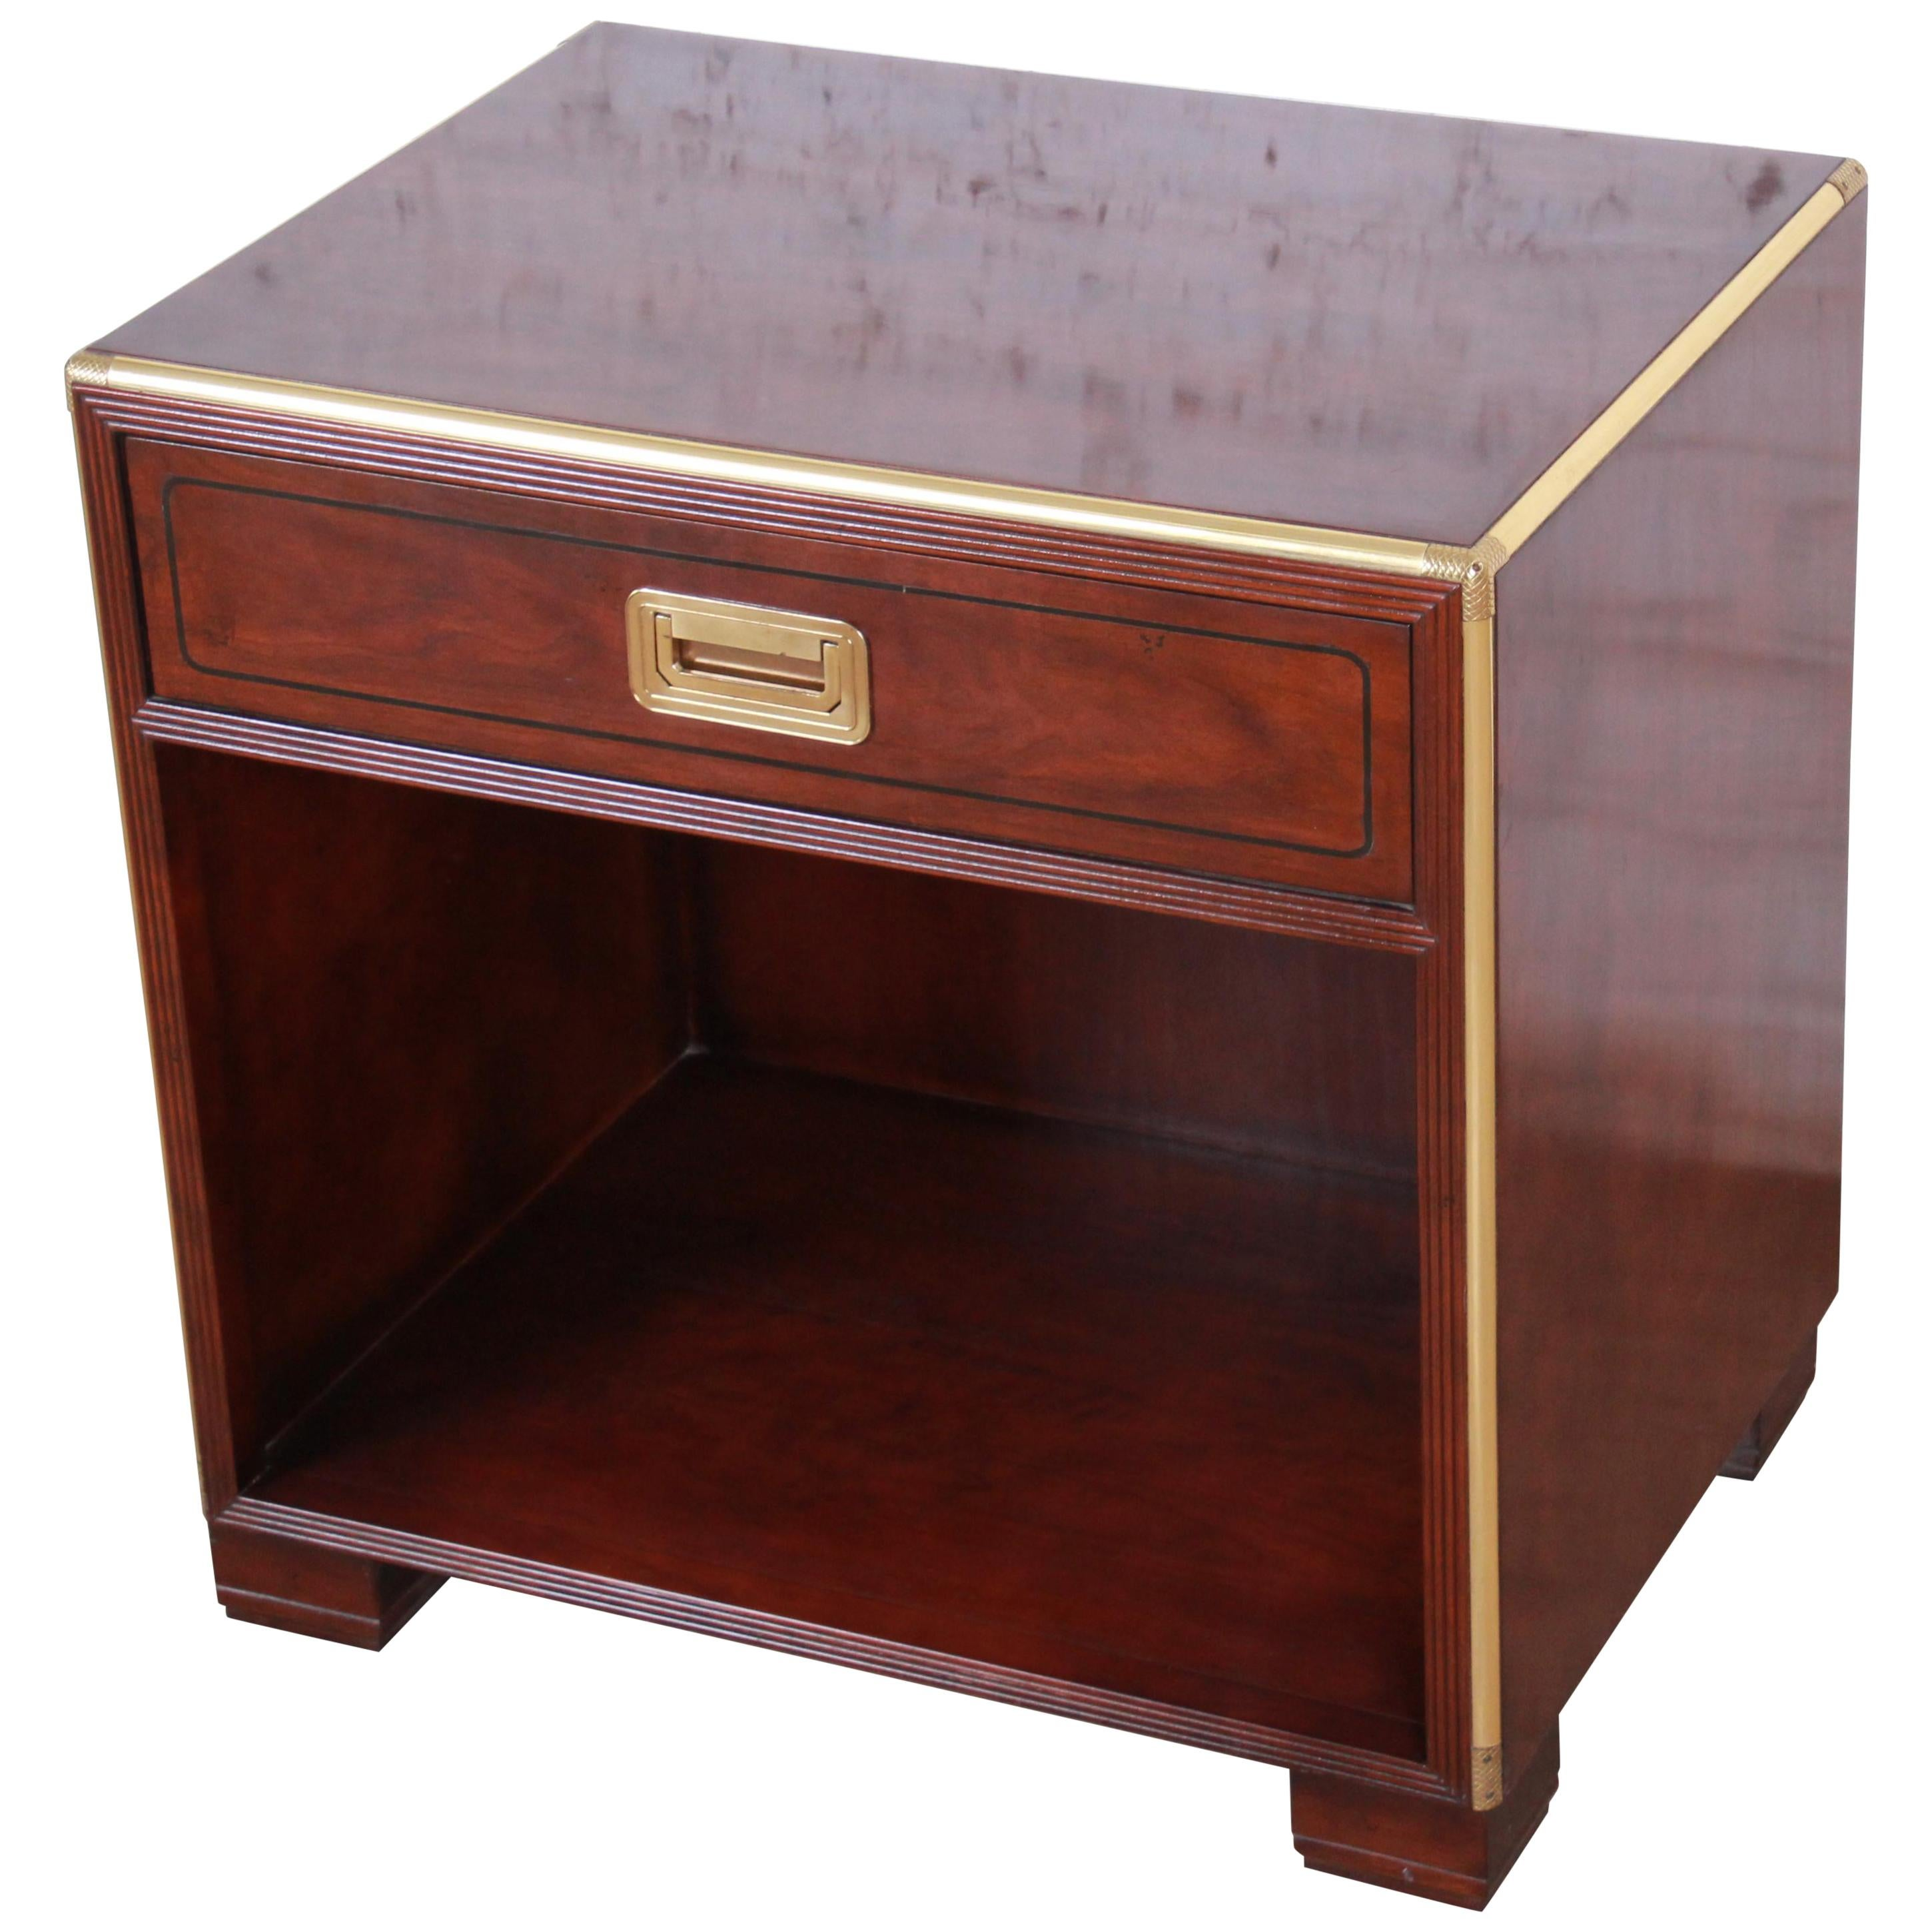 Baker Furniture Hollywood Regency Fruitwood and Brass Campaign Style Nightstand